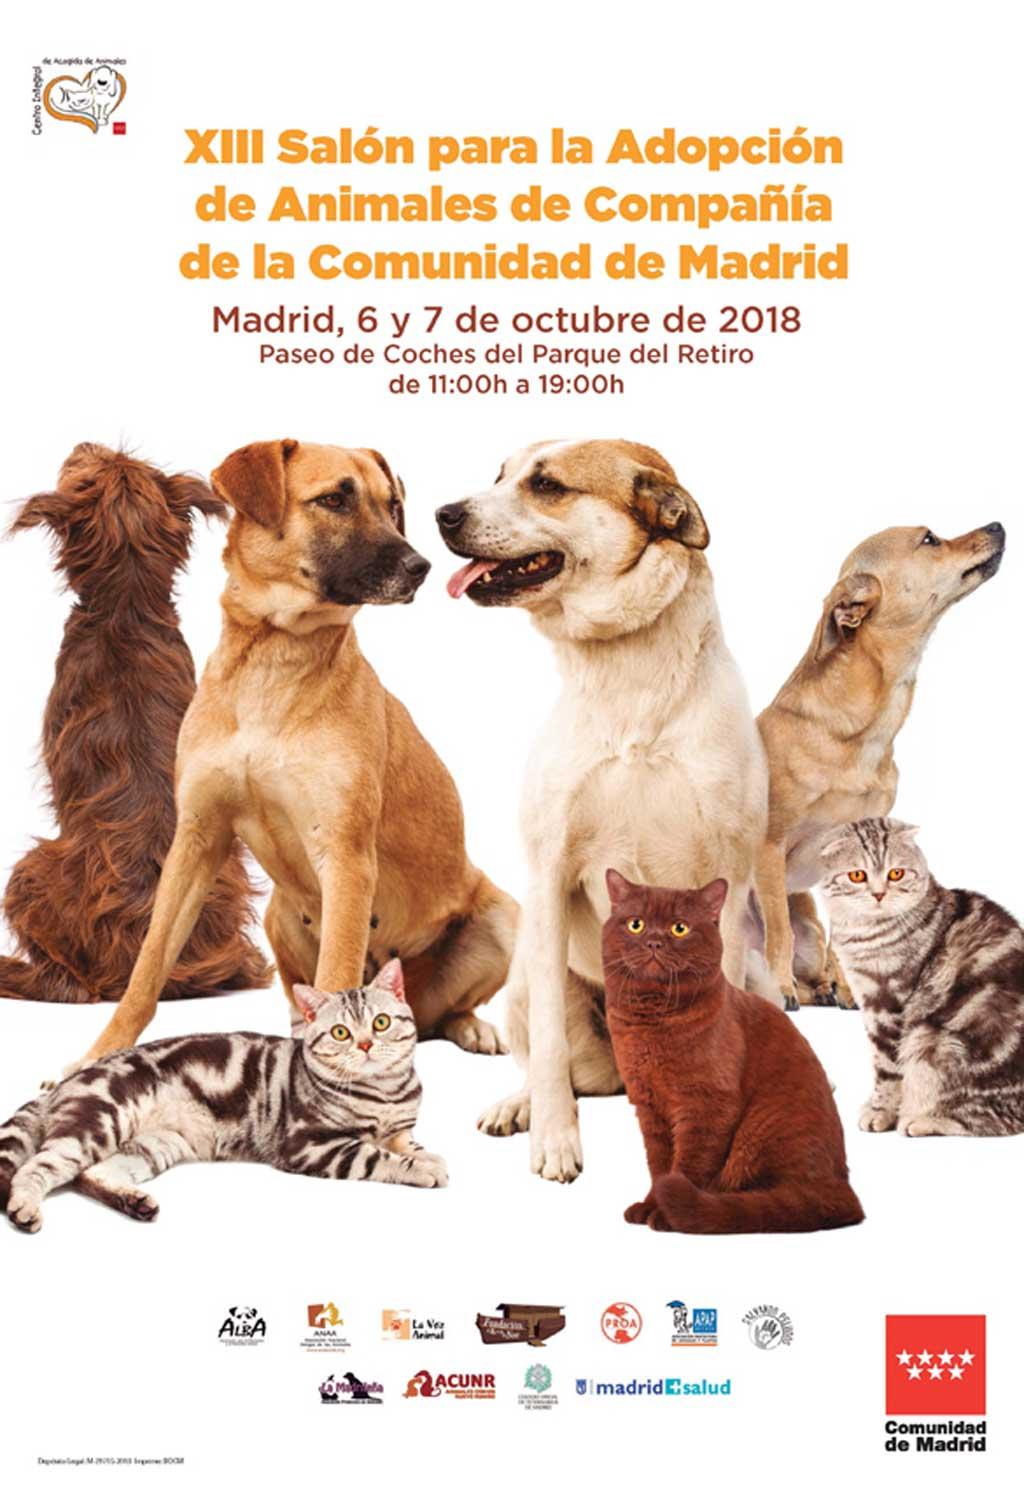 Hall for the Adoption of Companion Animals of the Community of Madrid